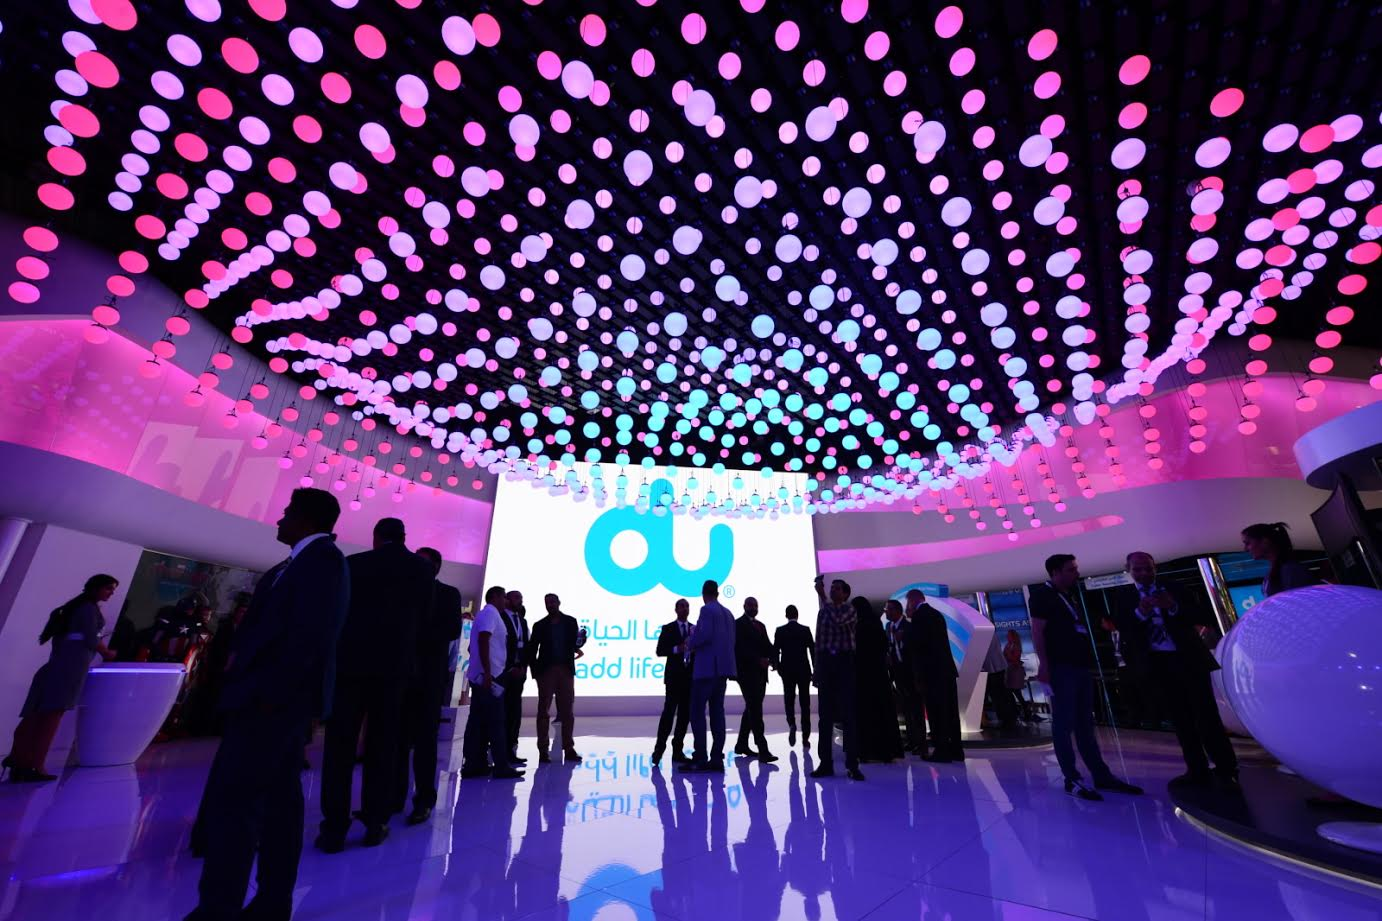 du boosts customers' 5G futures with UAE's first 5G router supporting 50GB data SIM